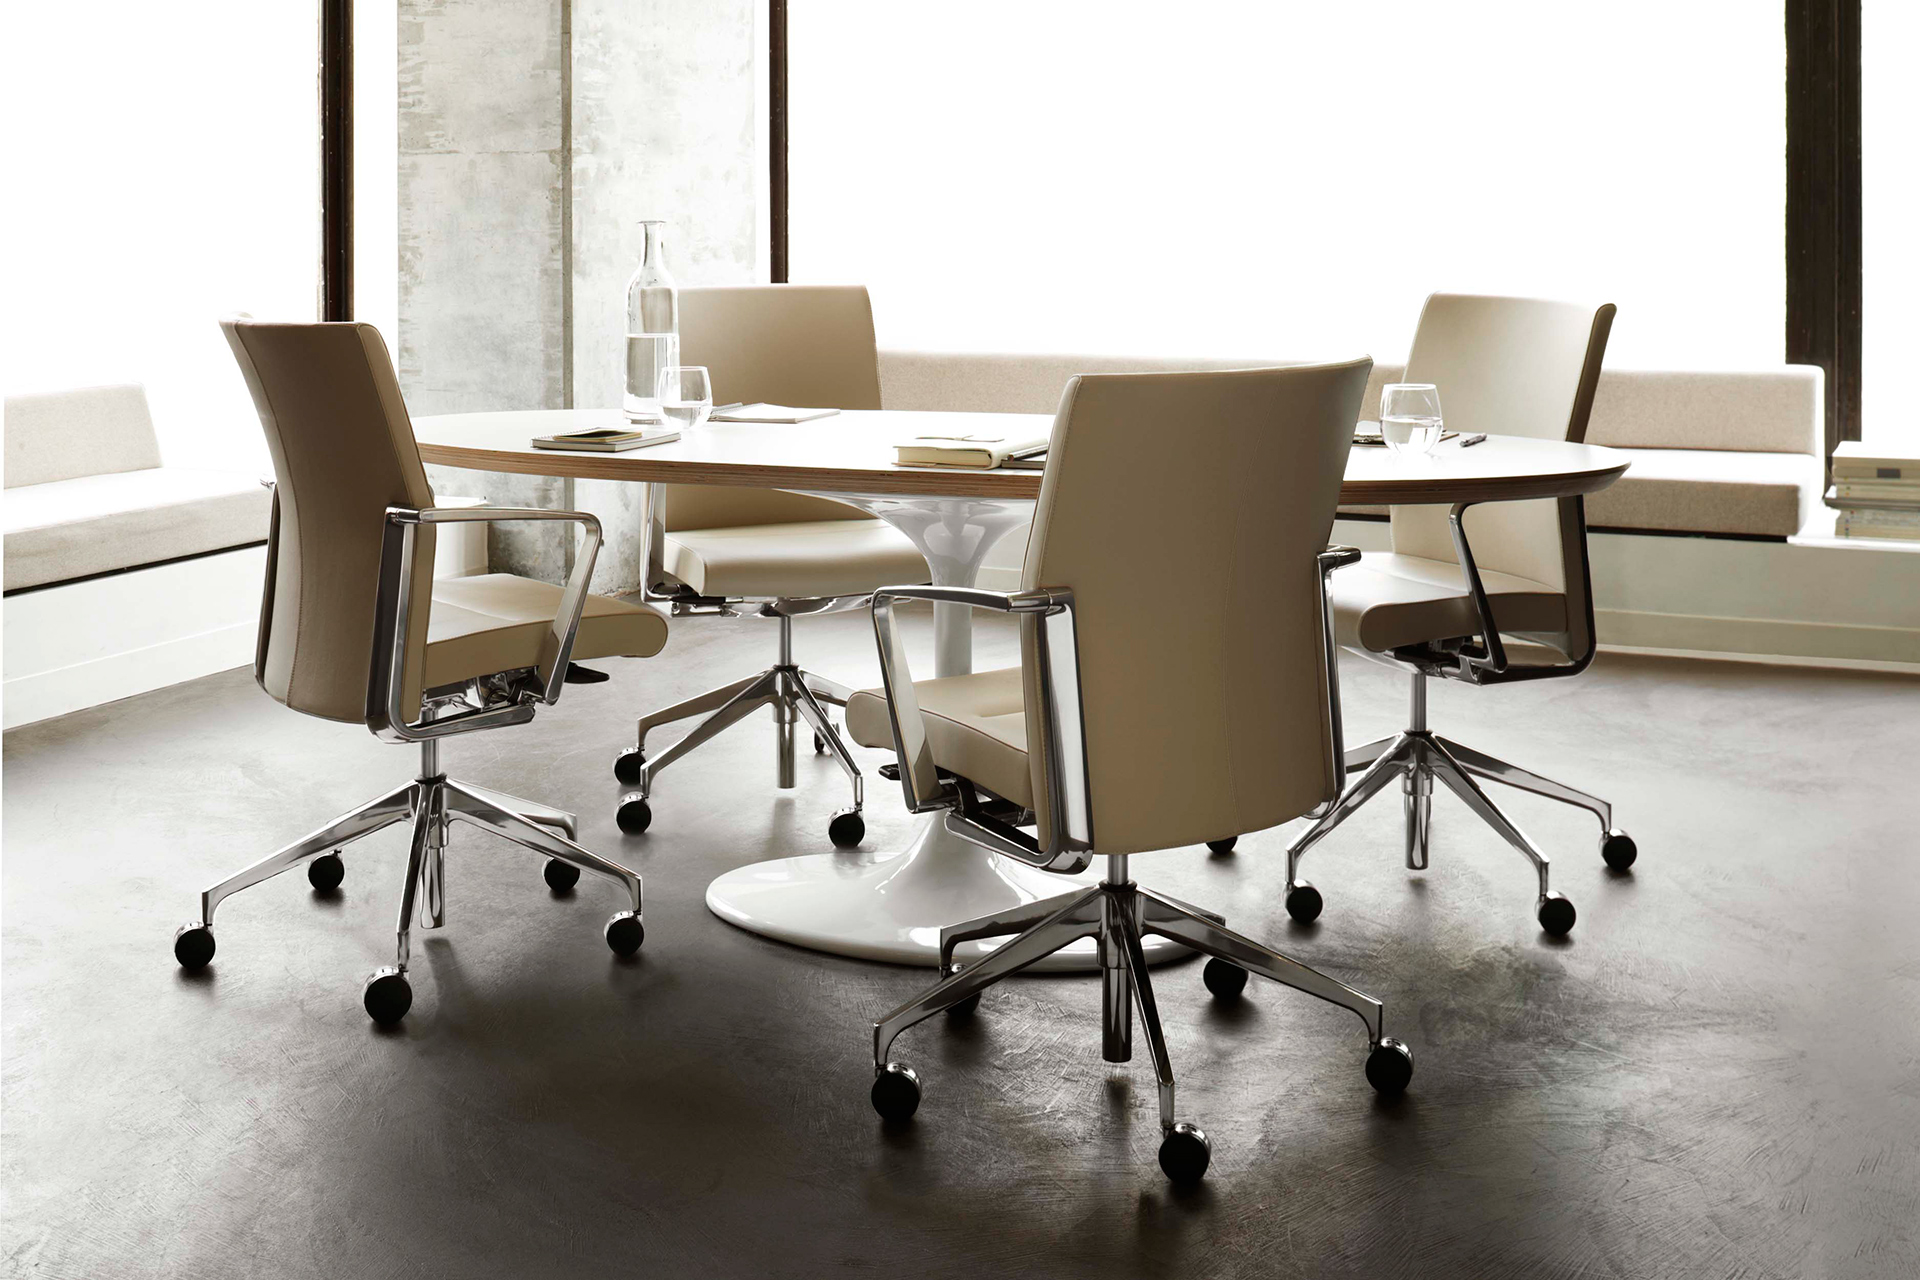 meeting room chairs ergonomic near me modern conference ambience dore leather polished aluminum elegant chair